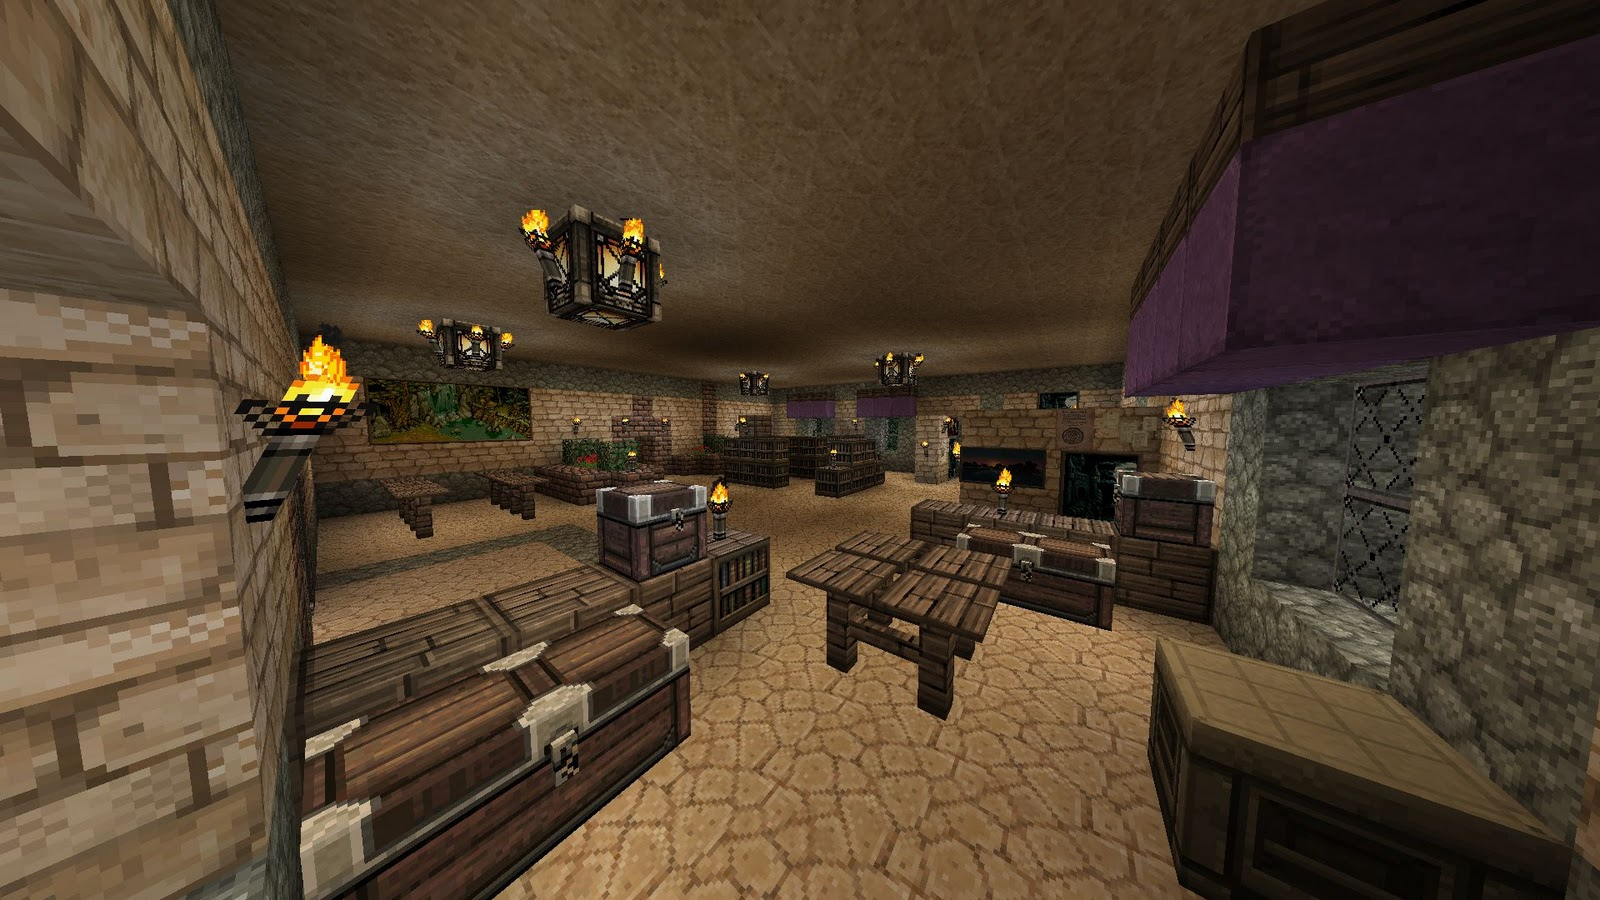 Free Download Minecraft Living Room Ideas For Bedroom 590x331 Minecraft Wallpapers 1600x900 For Your Desktop Mobile Tablet Explore 50 Minecraft Wallpaper For Rooms Minecraft Wallpaper For Your Bedroom Minecraft